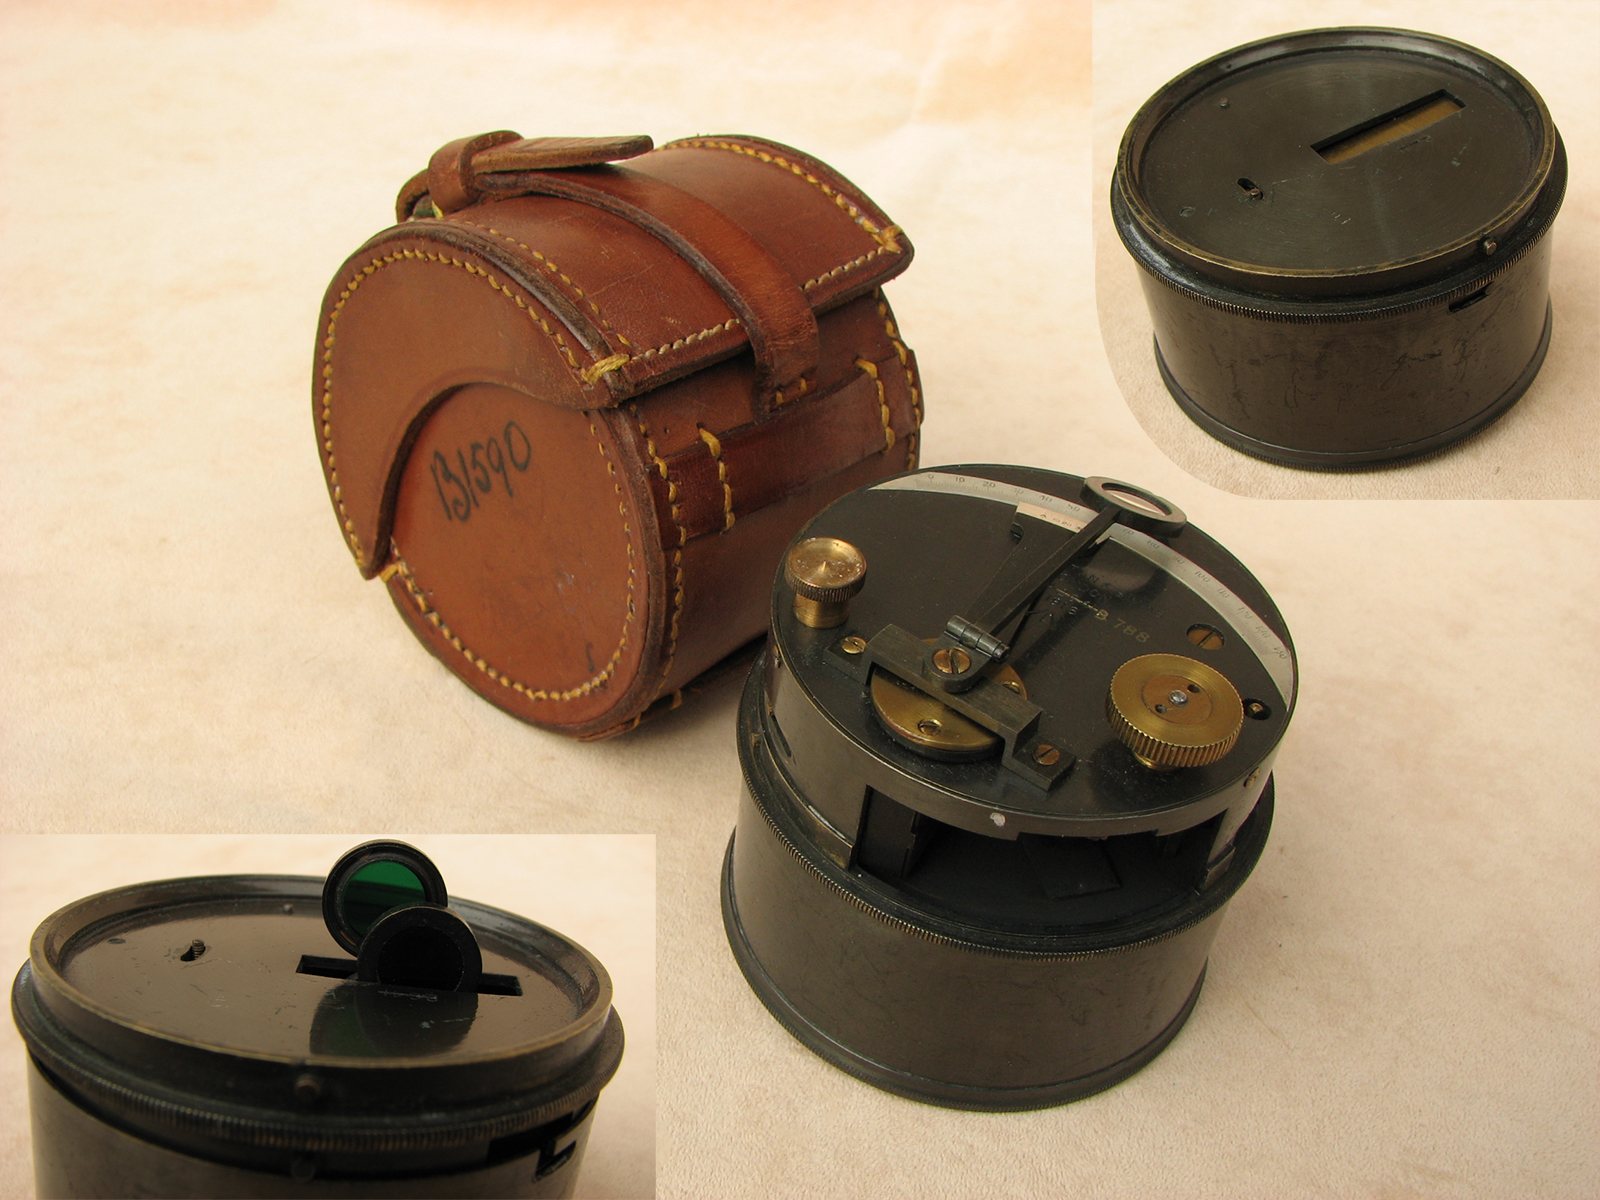 WW1 Troughton & Simms military pocket box sextant - dated 1916